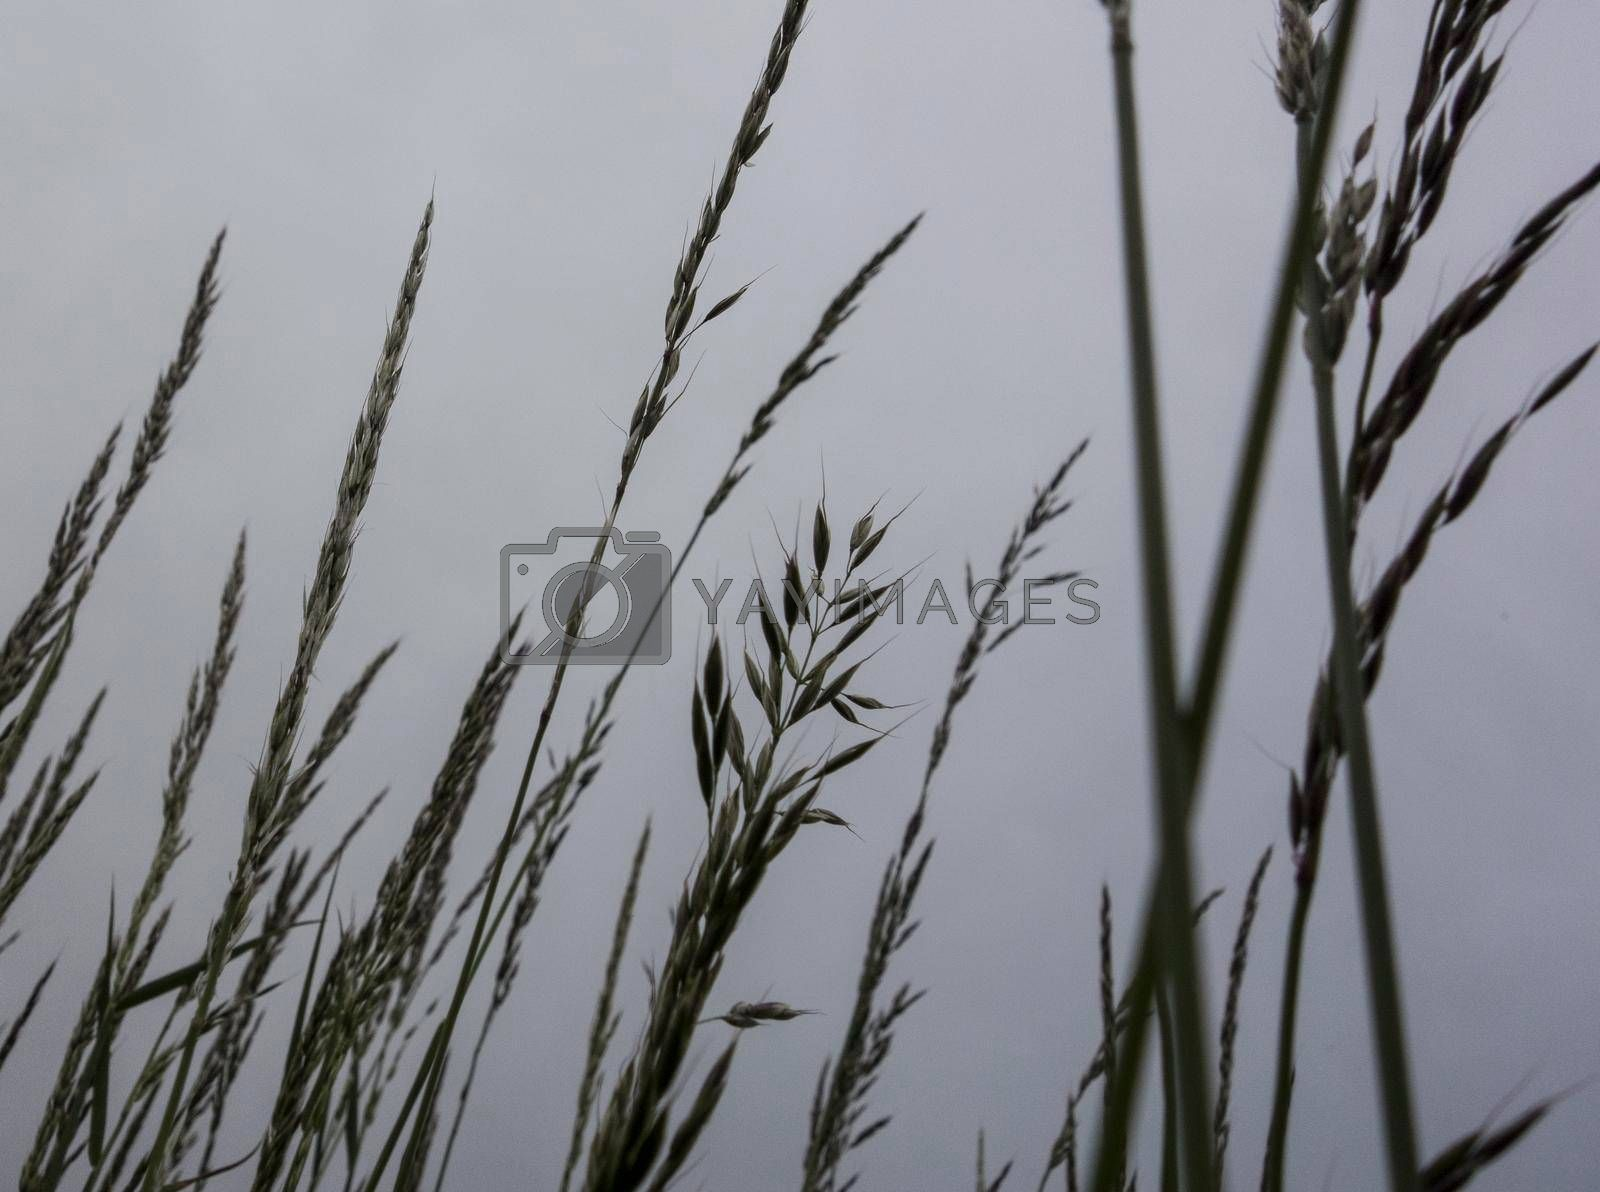 Wheat field in agriculture, growing cereal crops for food production